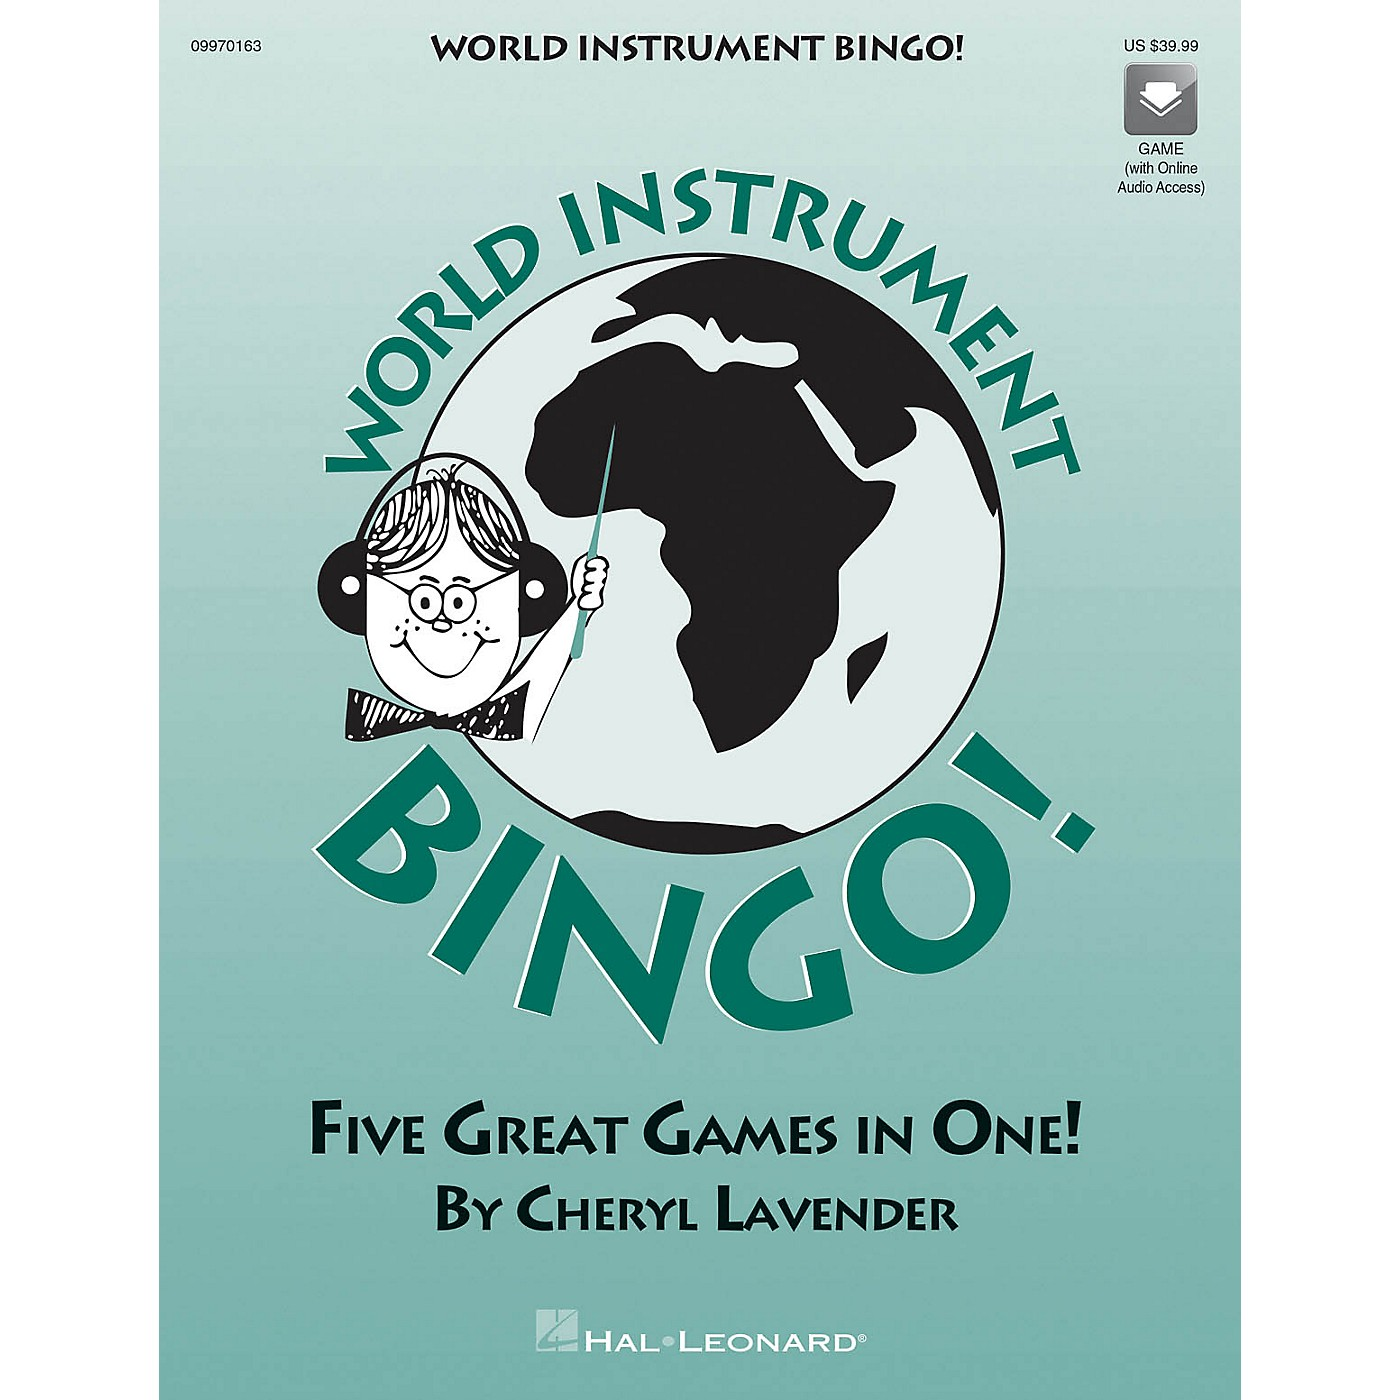 Hal Leonard World Instrument Bingo (Game) (Replacement CD) CD Composed by Cheryl Lavender thumbnail